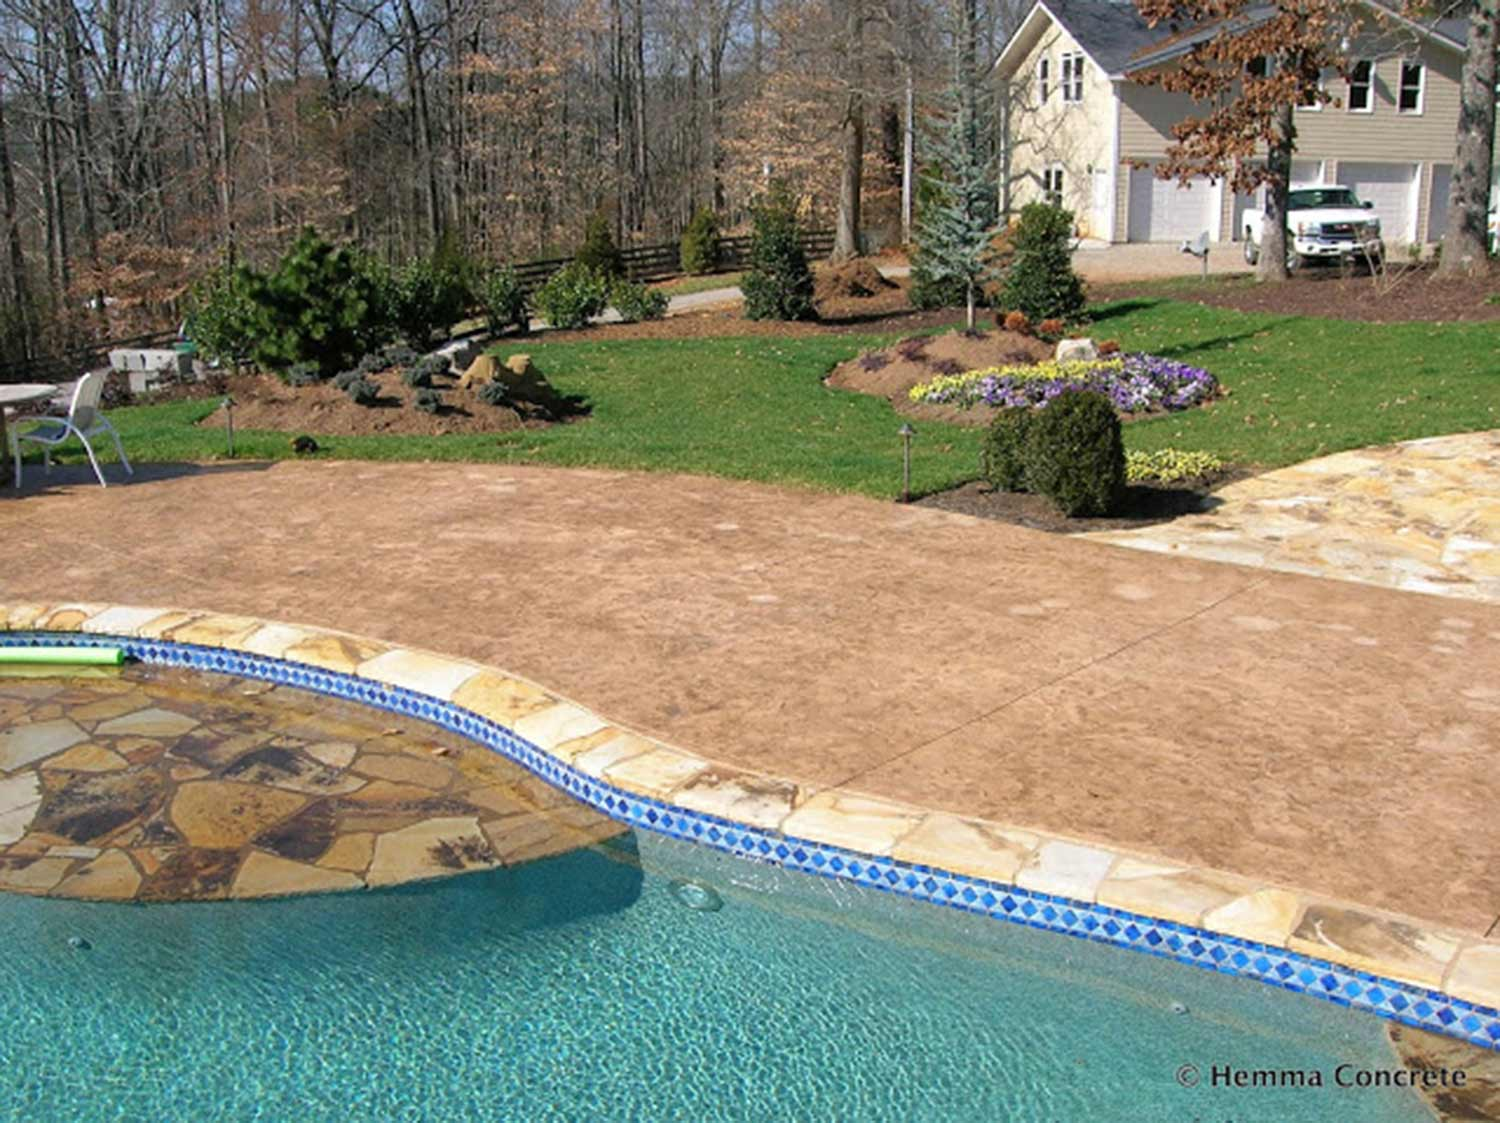 HemmaConcrete_ResidentiallServices_OutdoorLiving_2